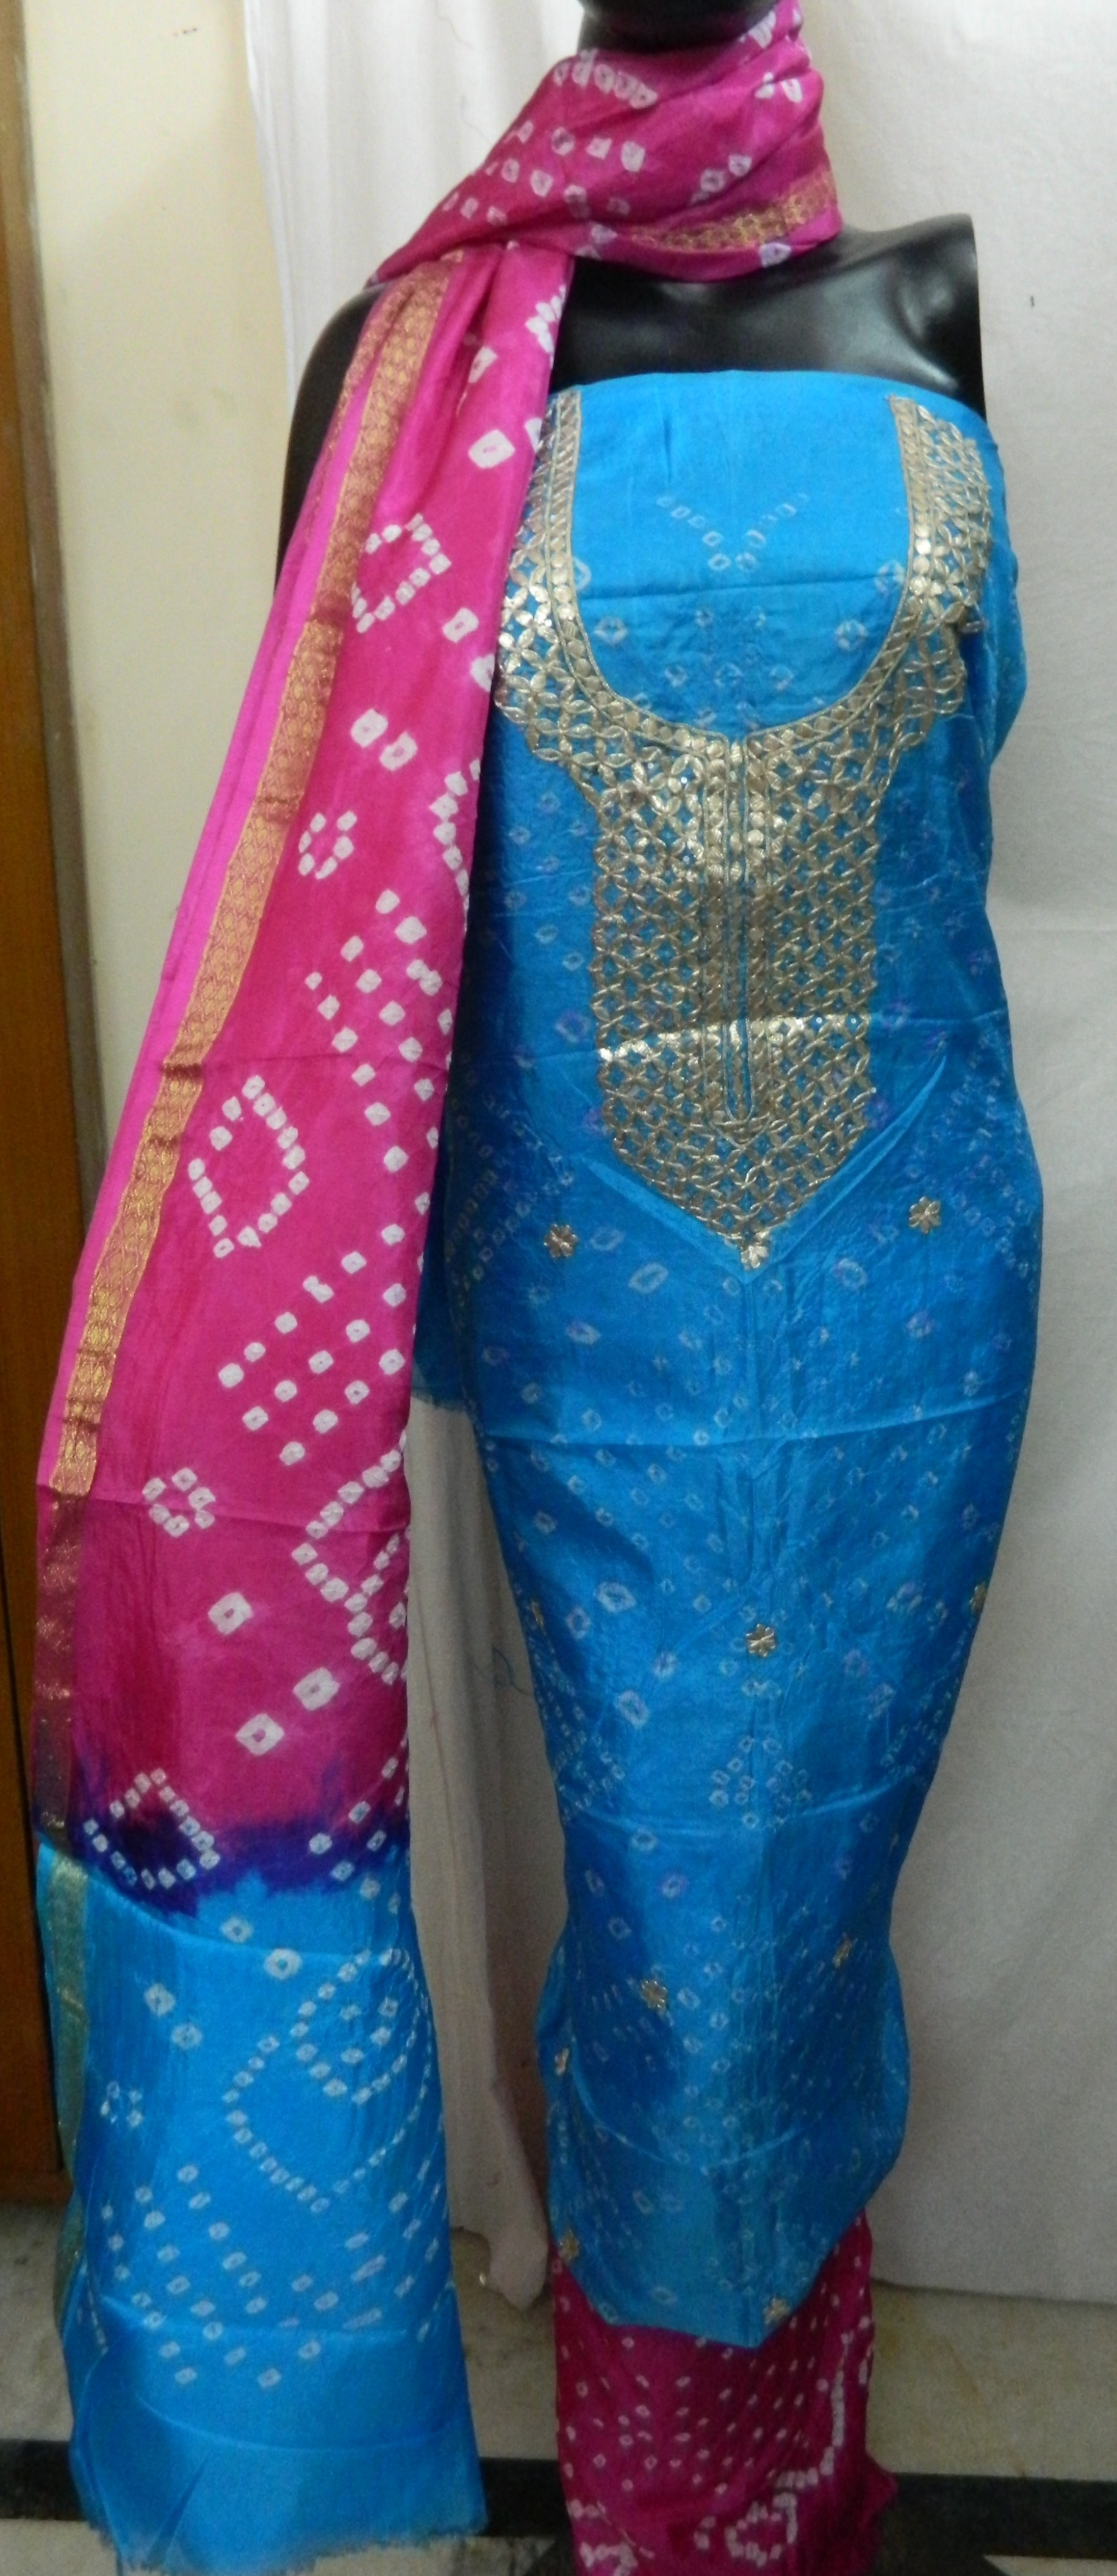 Hello,   Greetings from Aaditri Clothing from Jaipur. We are Manufacturer from Jaipur, Rajasthan.   Aaditri Bring To You Festival Offer.  Bandhej Art Silk Gota Patti Suit., .   Fabric  Top - Bandhej Art Silk  Bottom - Bandhej Art Silk  Dupatta - Bandhej Art Silk   Size -Top, Bottom, Dupatta- 2.5   Bandhej Art silk gota patti Suit in Different Color and many more items with effective & timely delivery.   Other Colour is available in this Design and Fabric.  You can order in Bulk than we will give you Best Prices.  You can order for Assorted Pieces or same pieces(as you like)   We are Manufacturer in Jaipur. We have Unstiched Salwar Dress Material. We have Chiffon Dupatta Dress Material ., Georgette Dress Material ., Chiffon Suit ., Cotton Dupatta Dress Material , Applique design, Cotton Suit , Designer Salwar Dress Material , Gota Patti Dress Material , Dobbi Dress Material , Embroidery Dress Material , Yok Dress Material , Patiyala Dress Material , Bandhej Art Silk Dress Material , Bandhej Dress Material , Block Print Dress Material , Block Print Gota Patti Dress Material , Chanderi Dress Material , Chanderi Gota Patti Dress Material , Zari Chanderi Dress Material , Patiyala Dress Material etc.